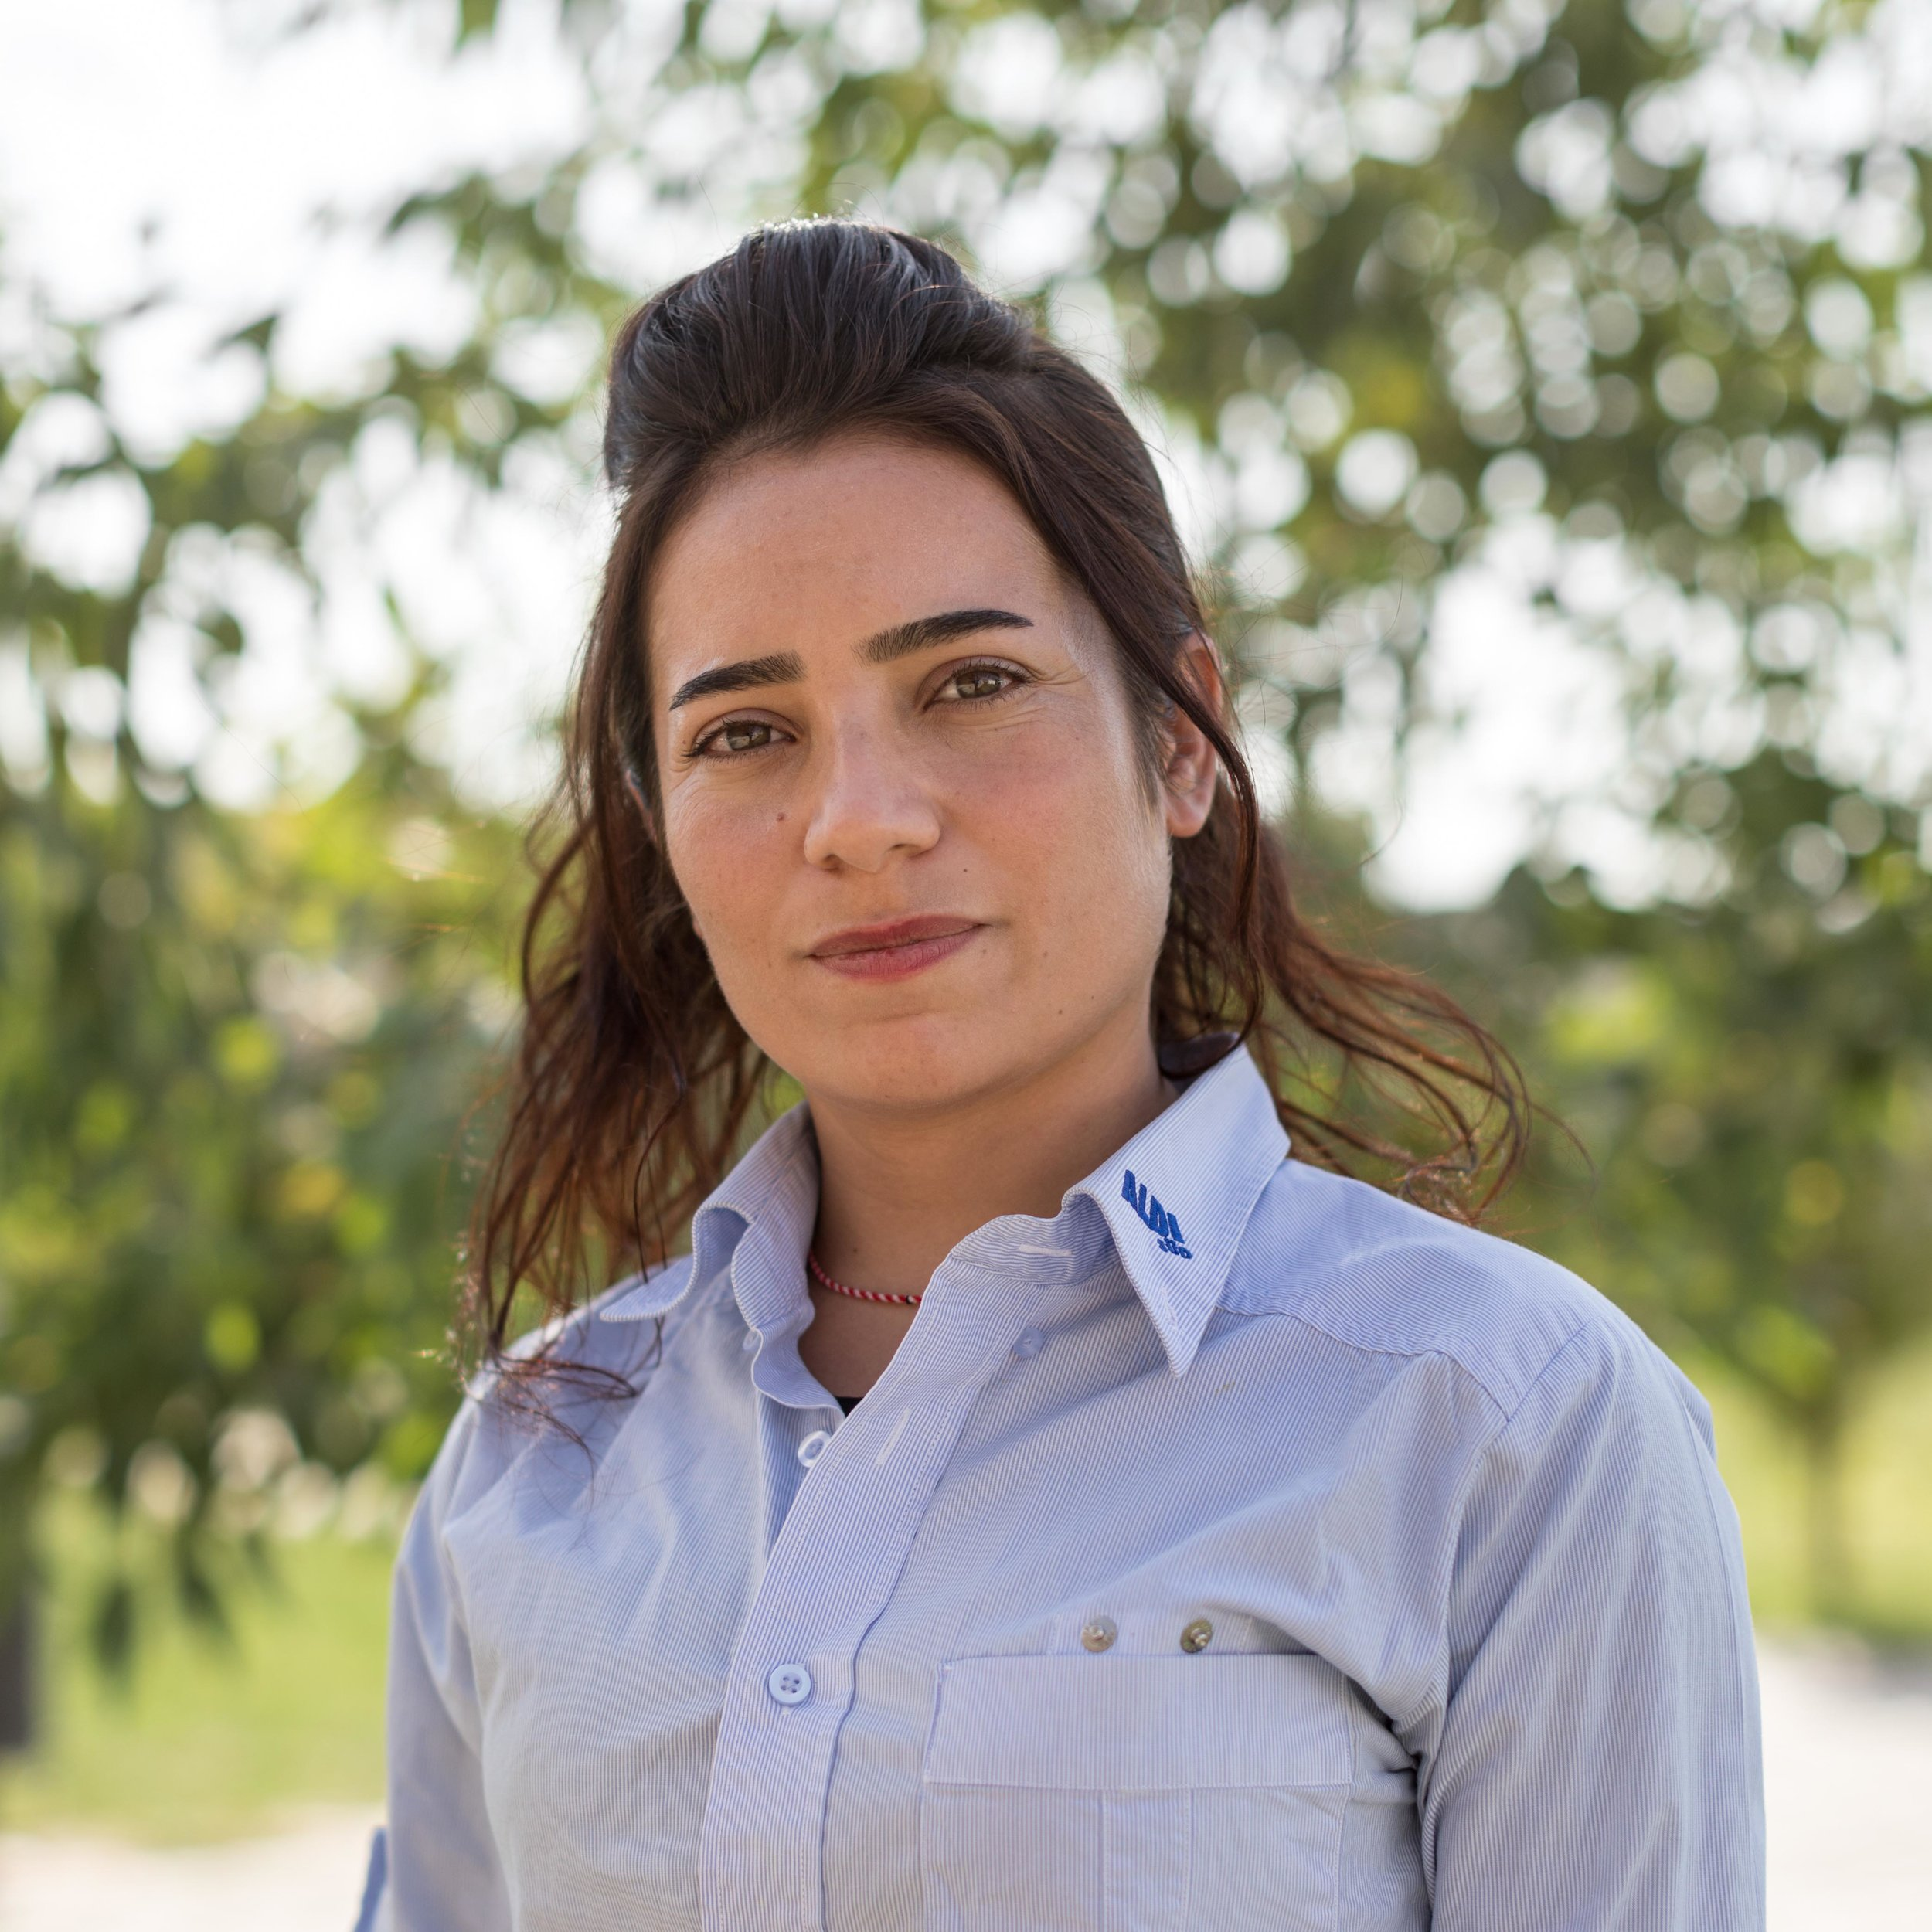 Bayaz Faris - Social CoordinatorBayaz has been a community volunteer with the Lotus Flower since December 2016. She recently applied to the English Department at Duhok University and has been conducting English languagecourses, literacy courses, and awareness sessions for women and girls at the Women's Centre. Prior to the Lotus Flower, Bayaz survived ISIS's attacks with her family and friends. She spent horrible period on Sinjar Mountain until reaching a safe place.